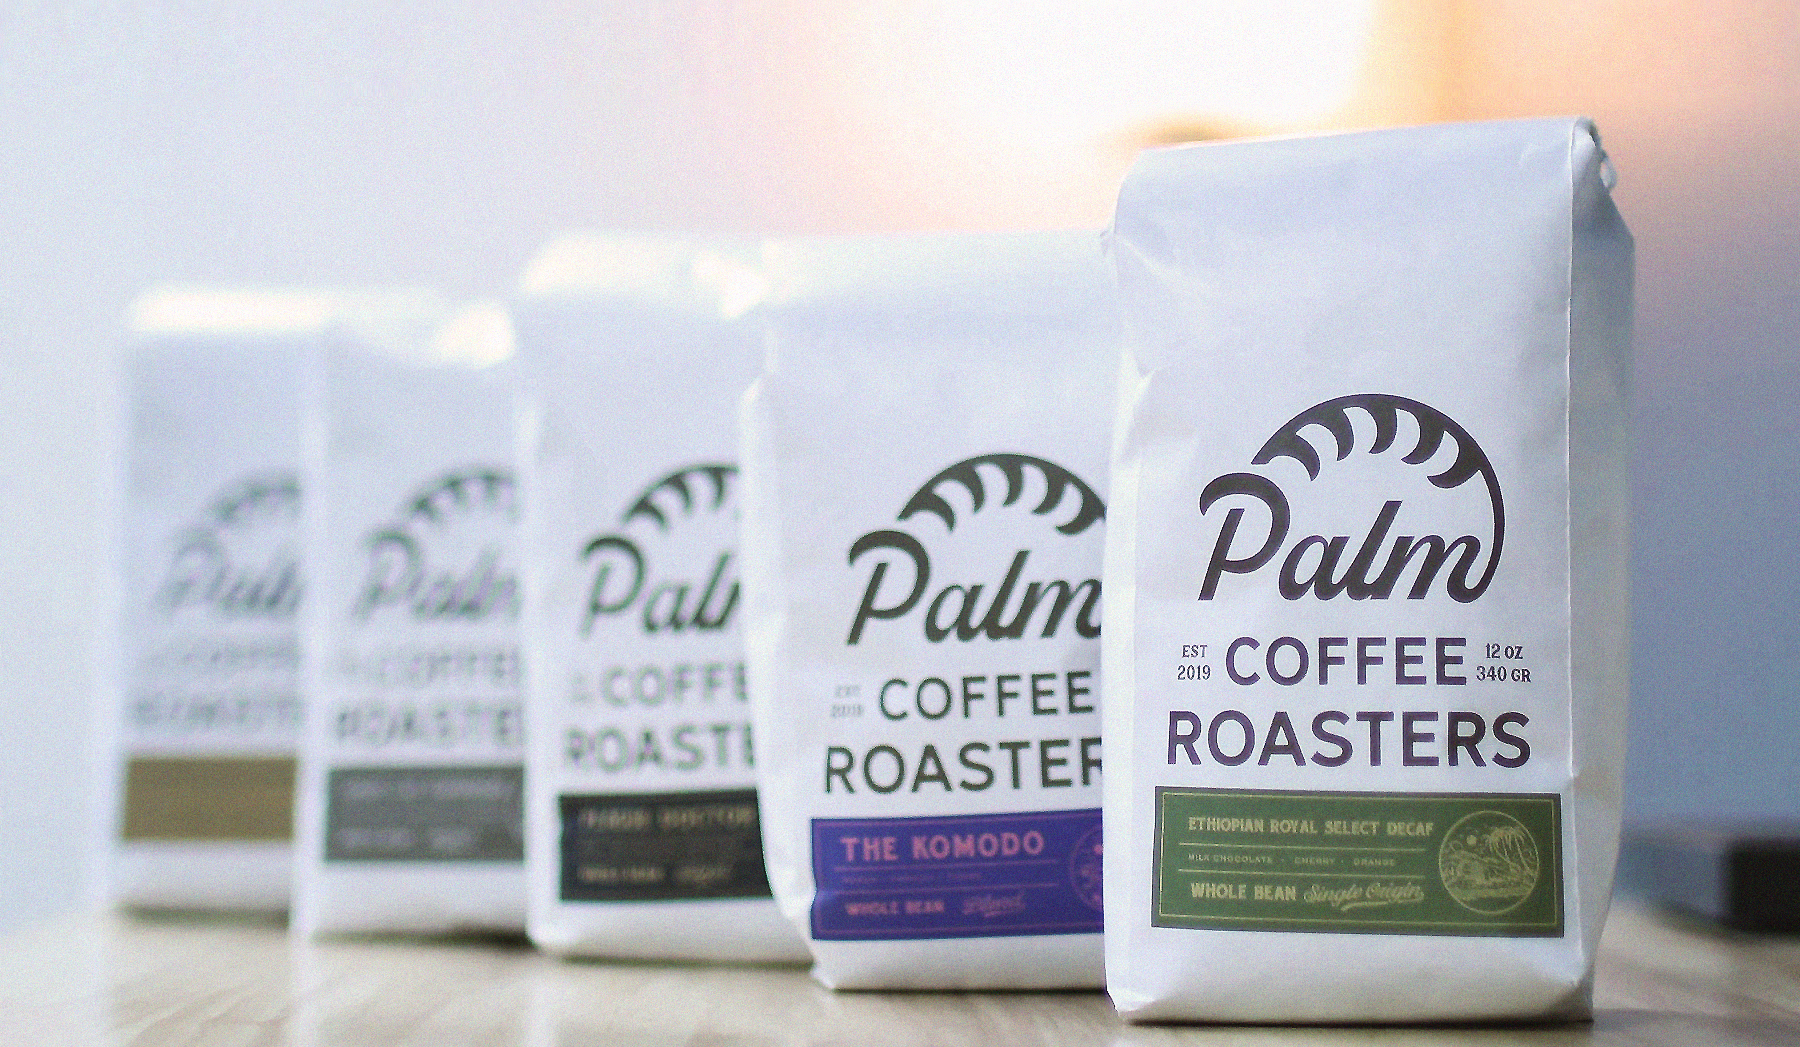 palm-coffee-zeki-michael-design-branding-freelance-packaging-artwork-agency-service-